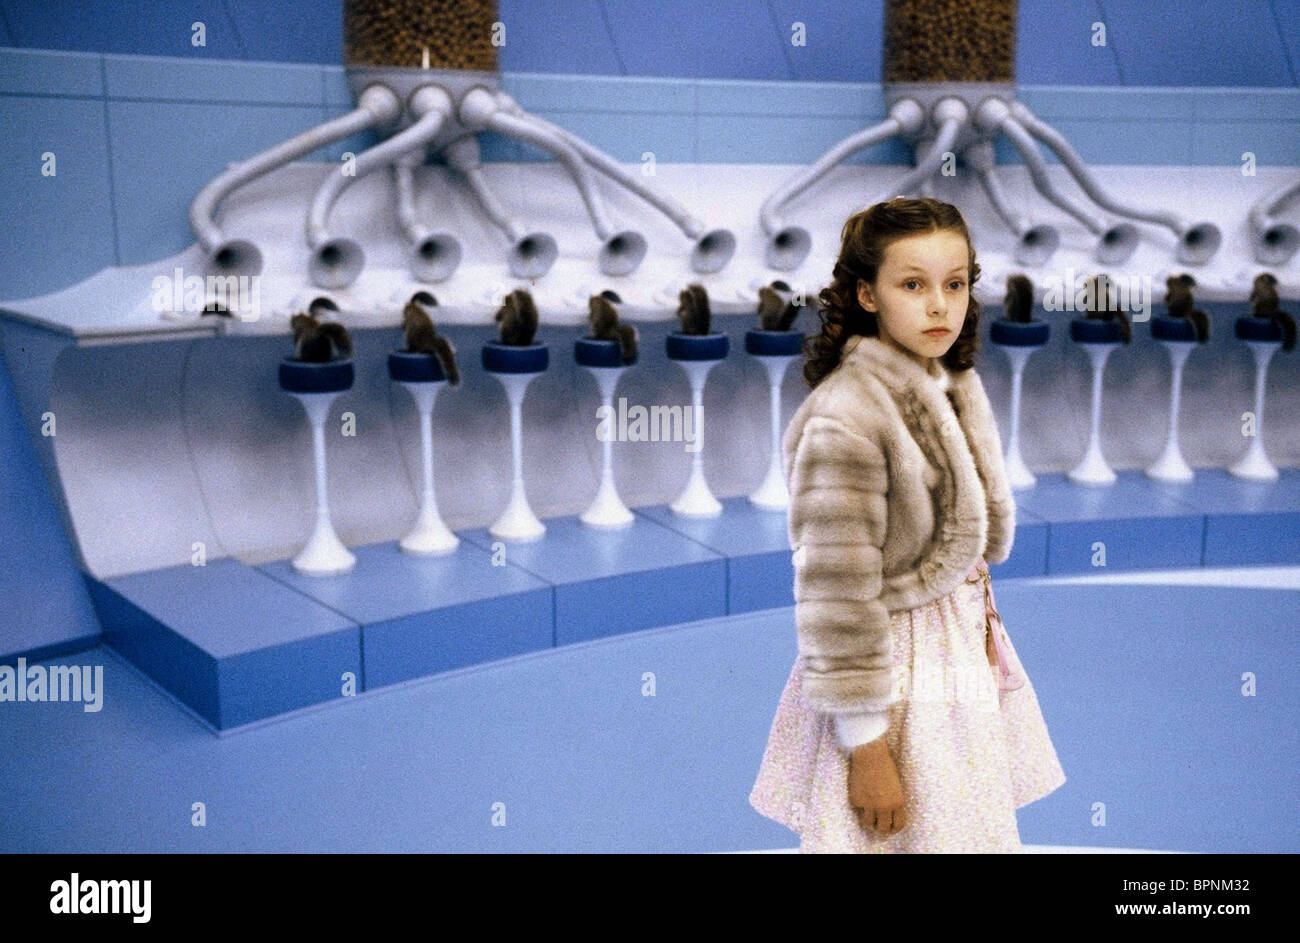 charlie and the chocolate factory film stock photos charlie and julia winter charlie and the chocolate factory 2005 stock image